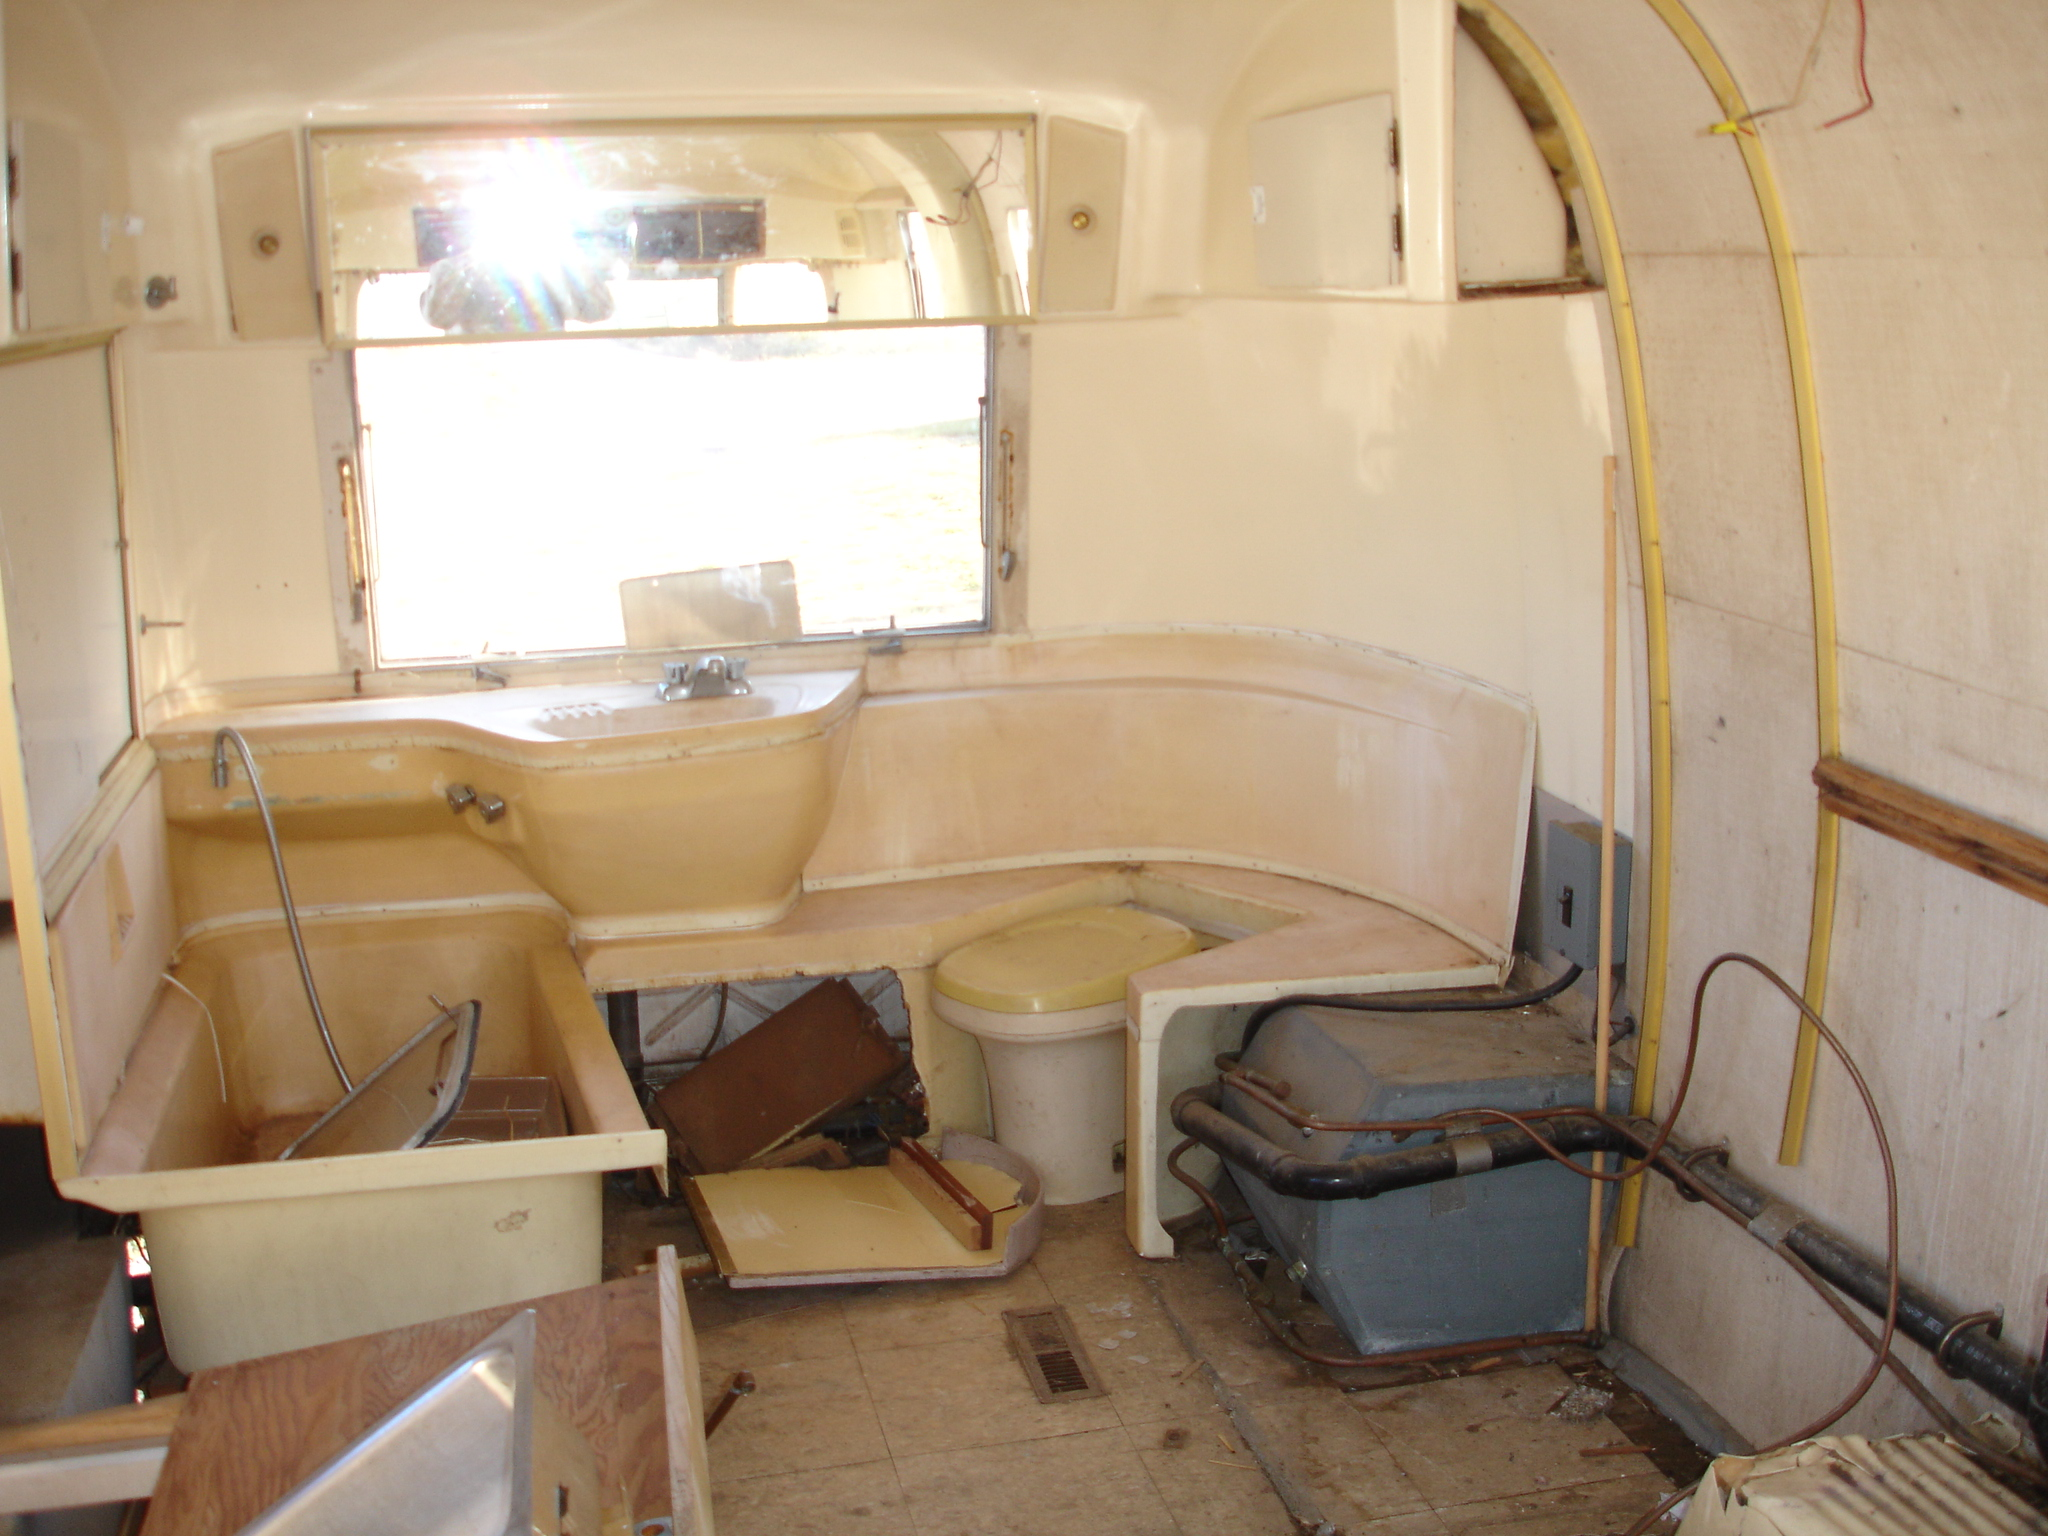 1969 Airstream Bathroom set 1